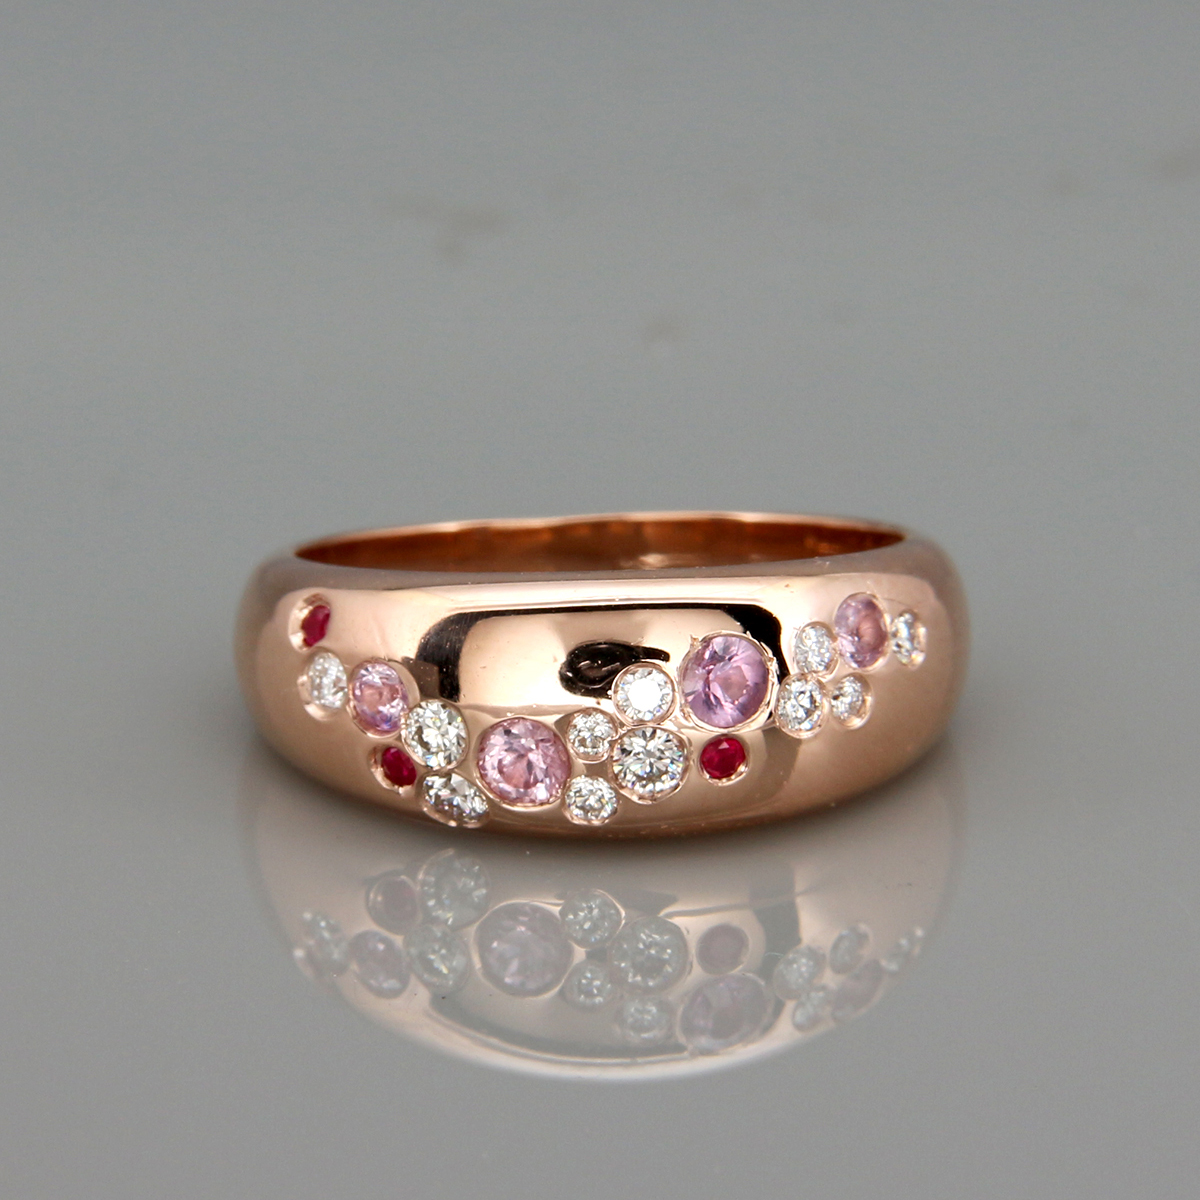 Cherry Blossom 14k Rose Gold Cluster Ring set with Diamonds Ruby and Pink Sapphire |14k rose gold ring inspired by the cherry blossom